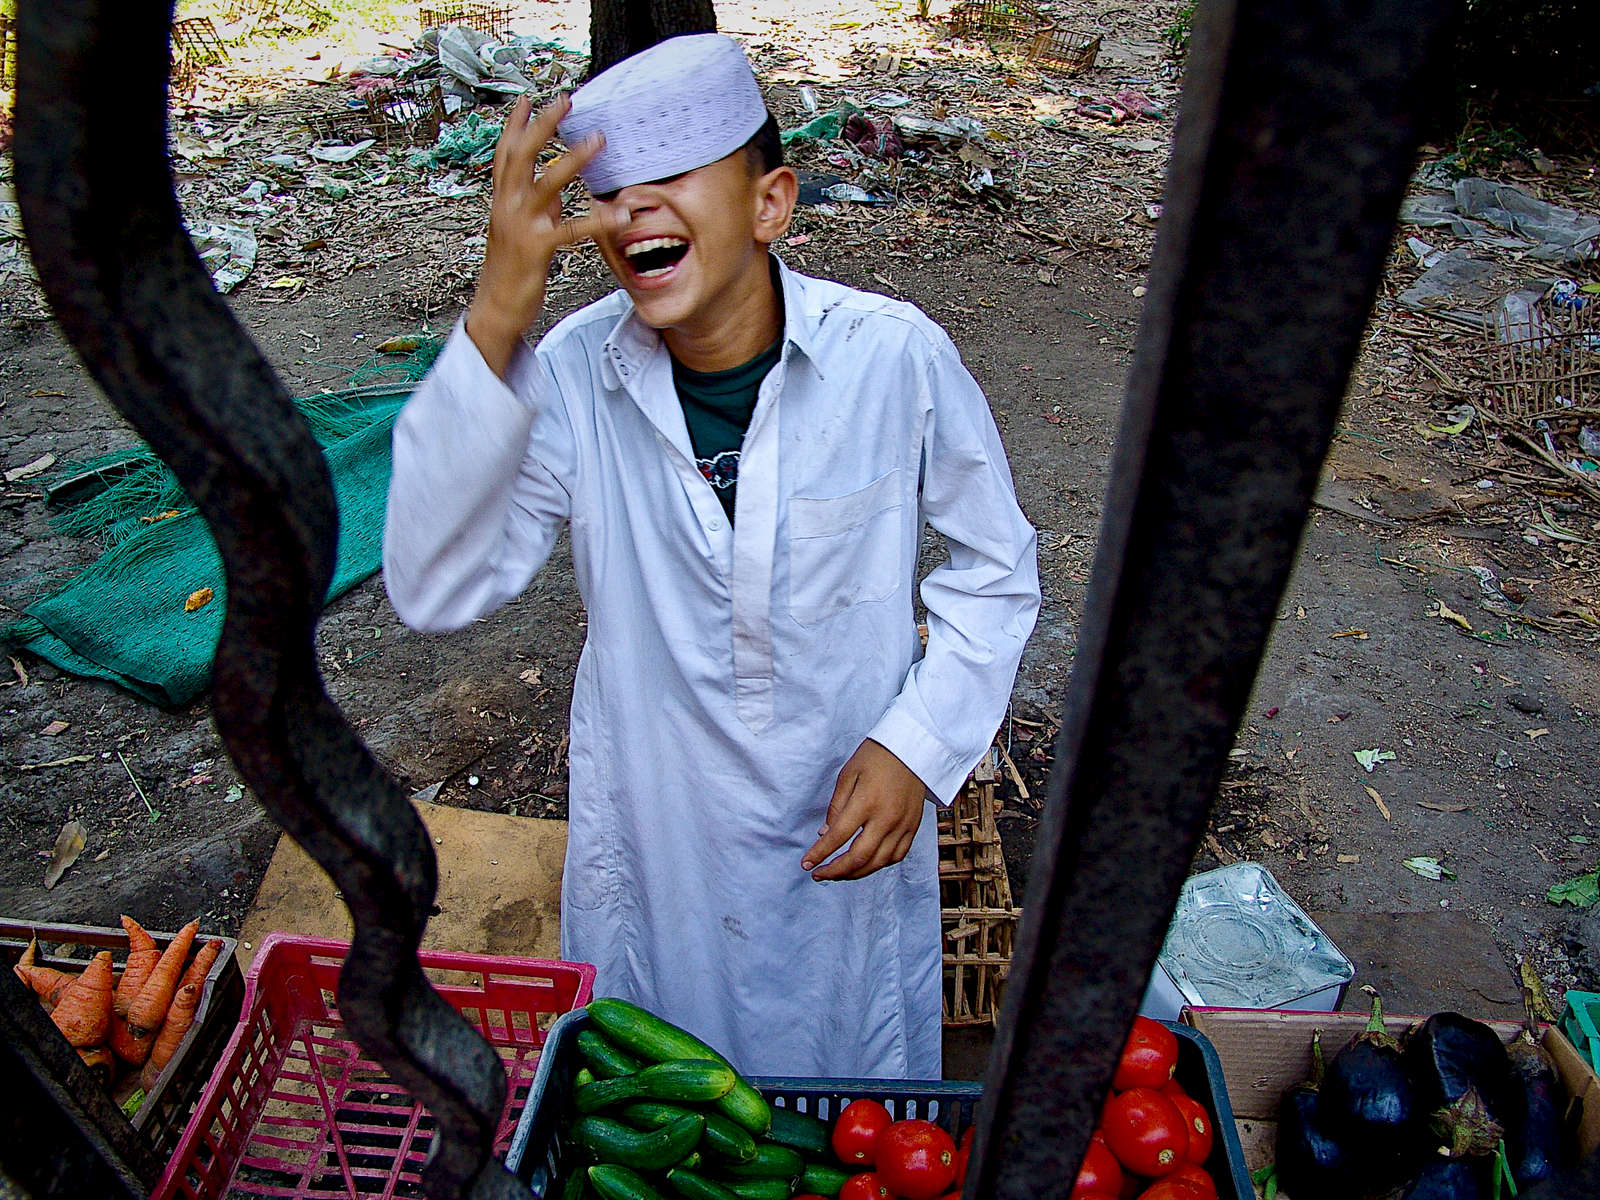 Vegetable vendor. Cairo.